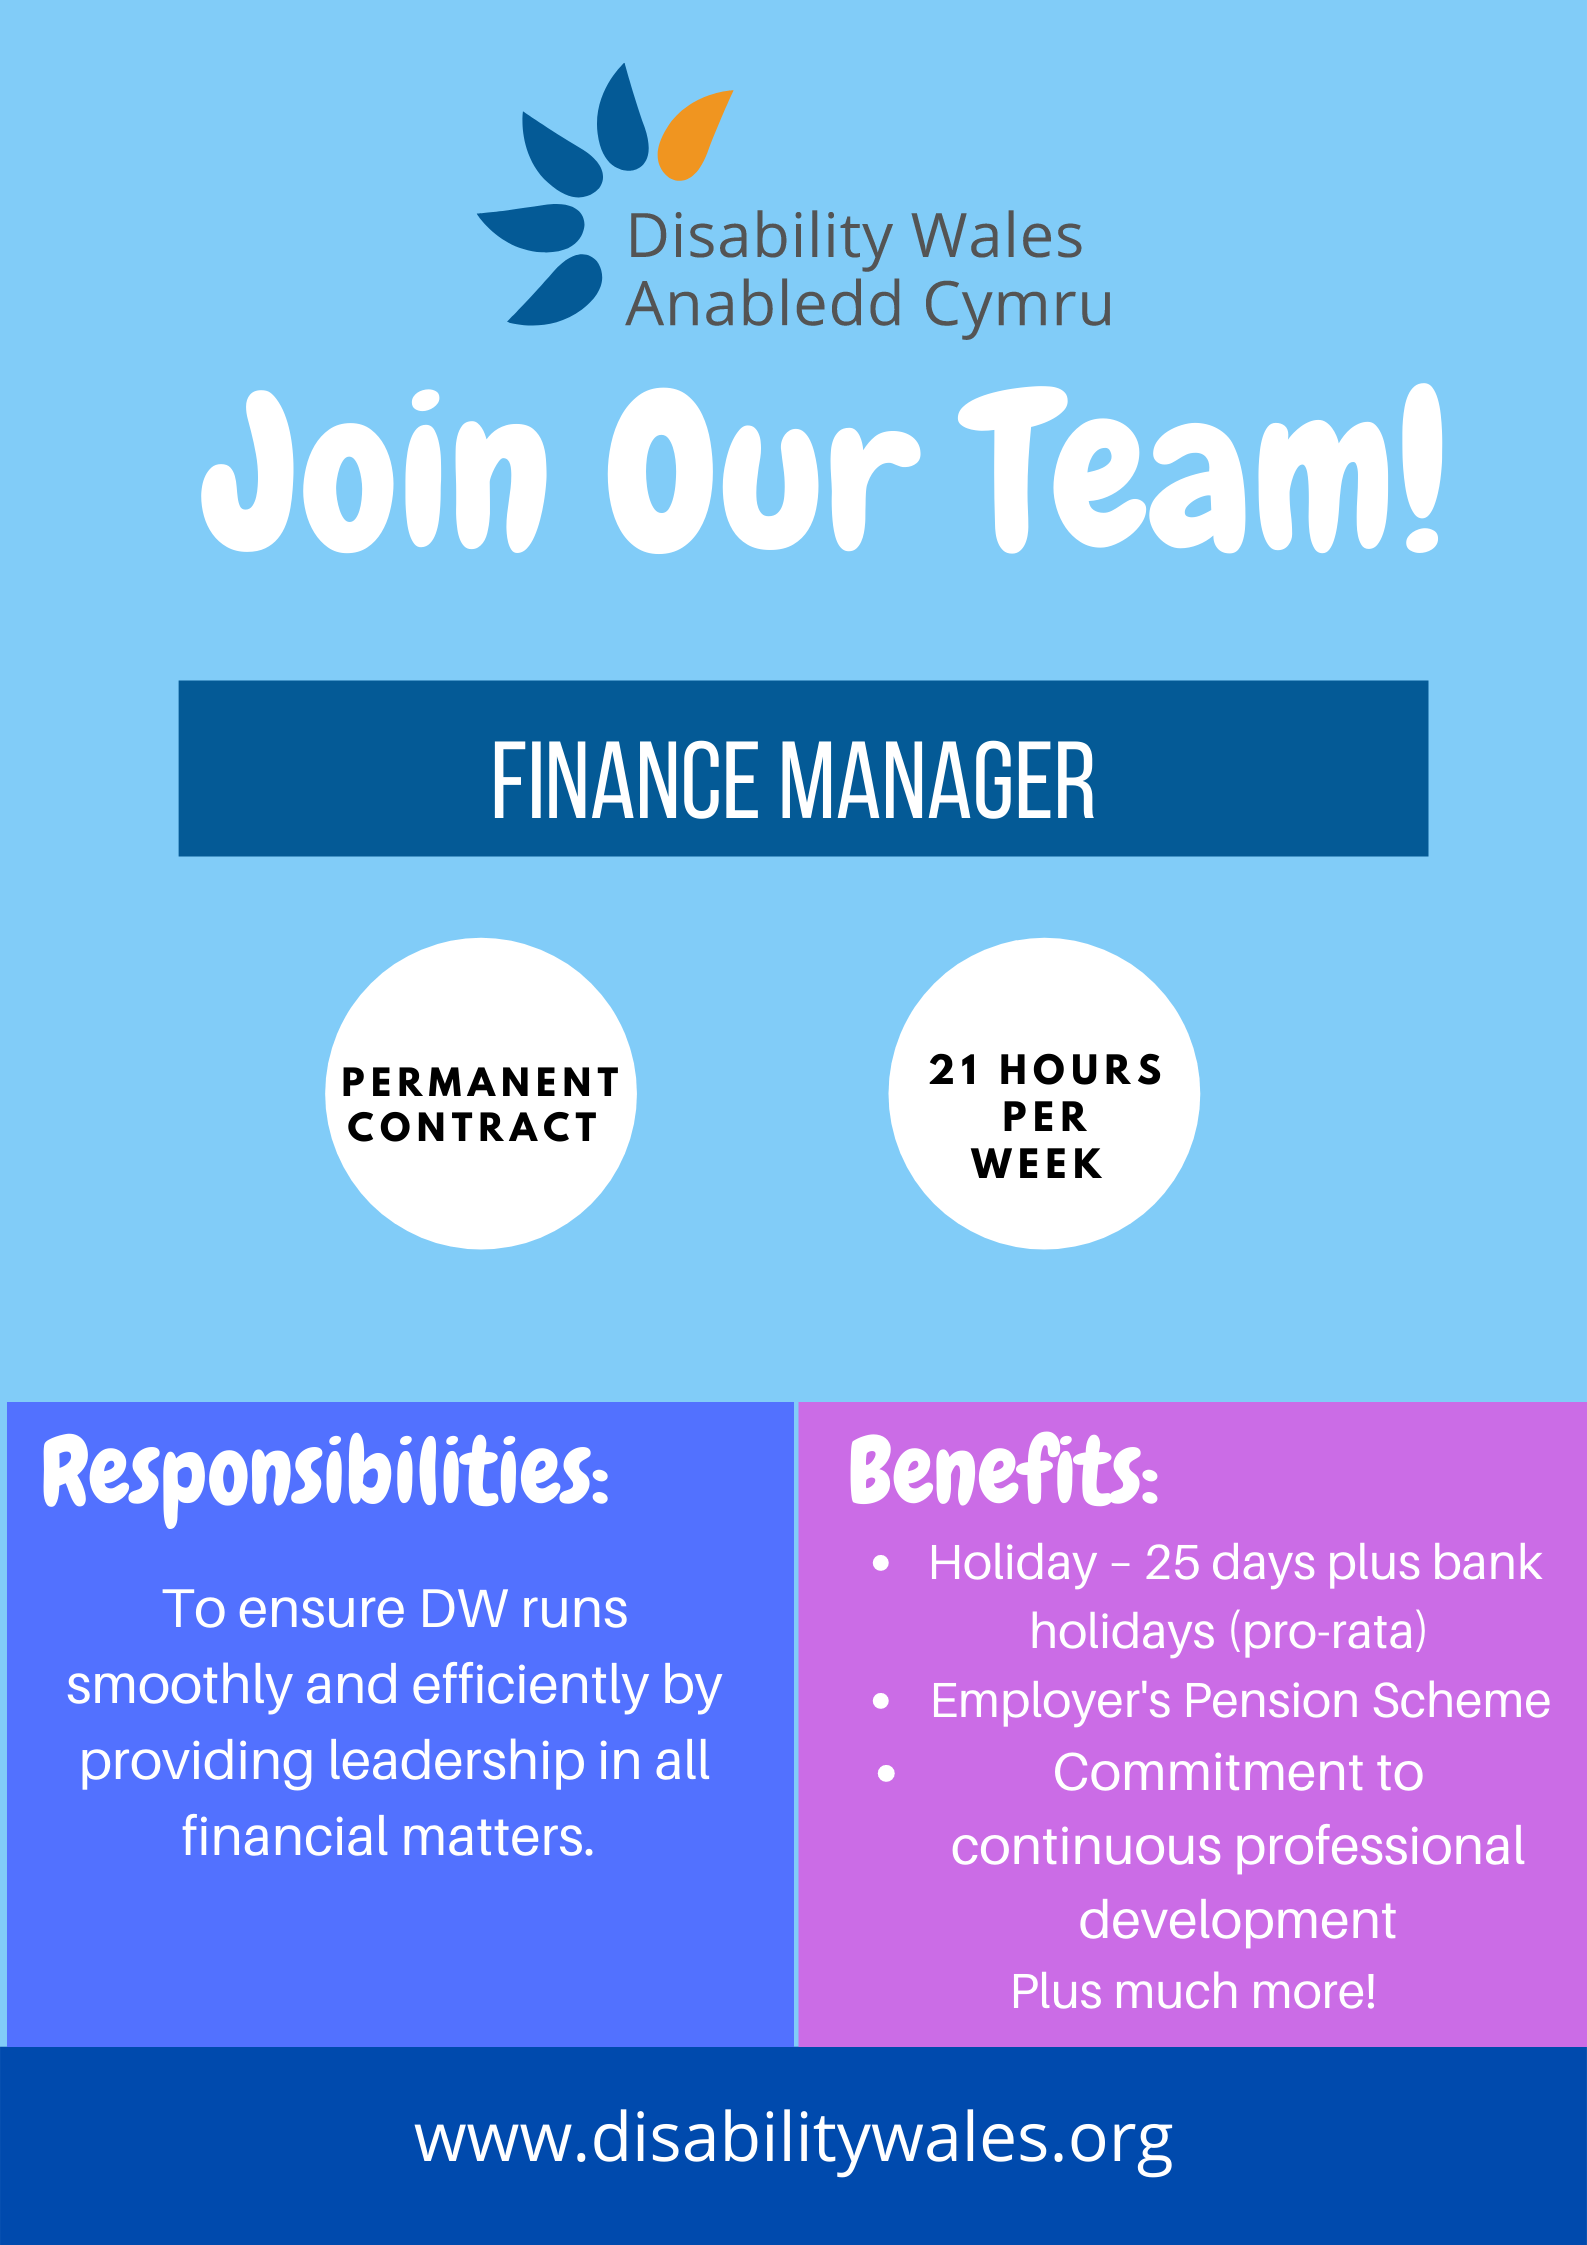 A blue job advert poster with the words Join our team in big white writing underneath a small DW logo. The job title: Finance Manager is in the centre with more details about the role underneath, including hours: 21 hours per week, permanent contract.